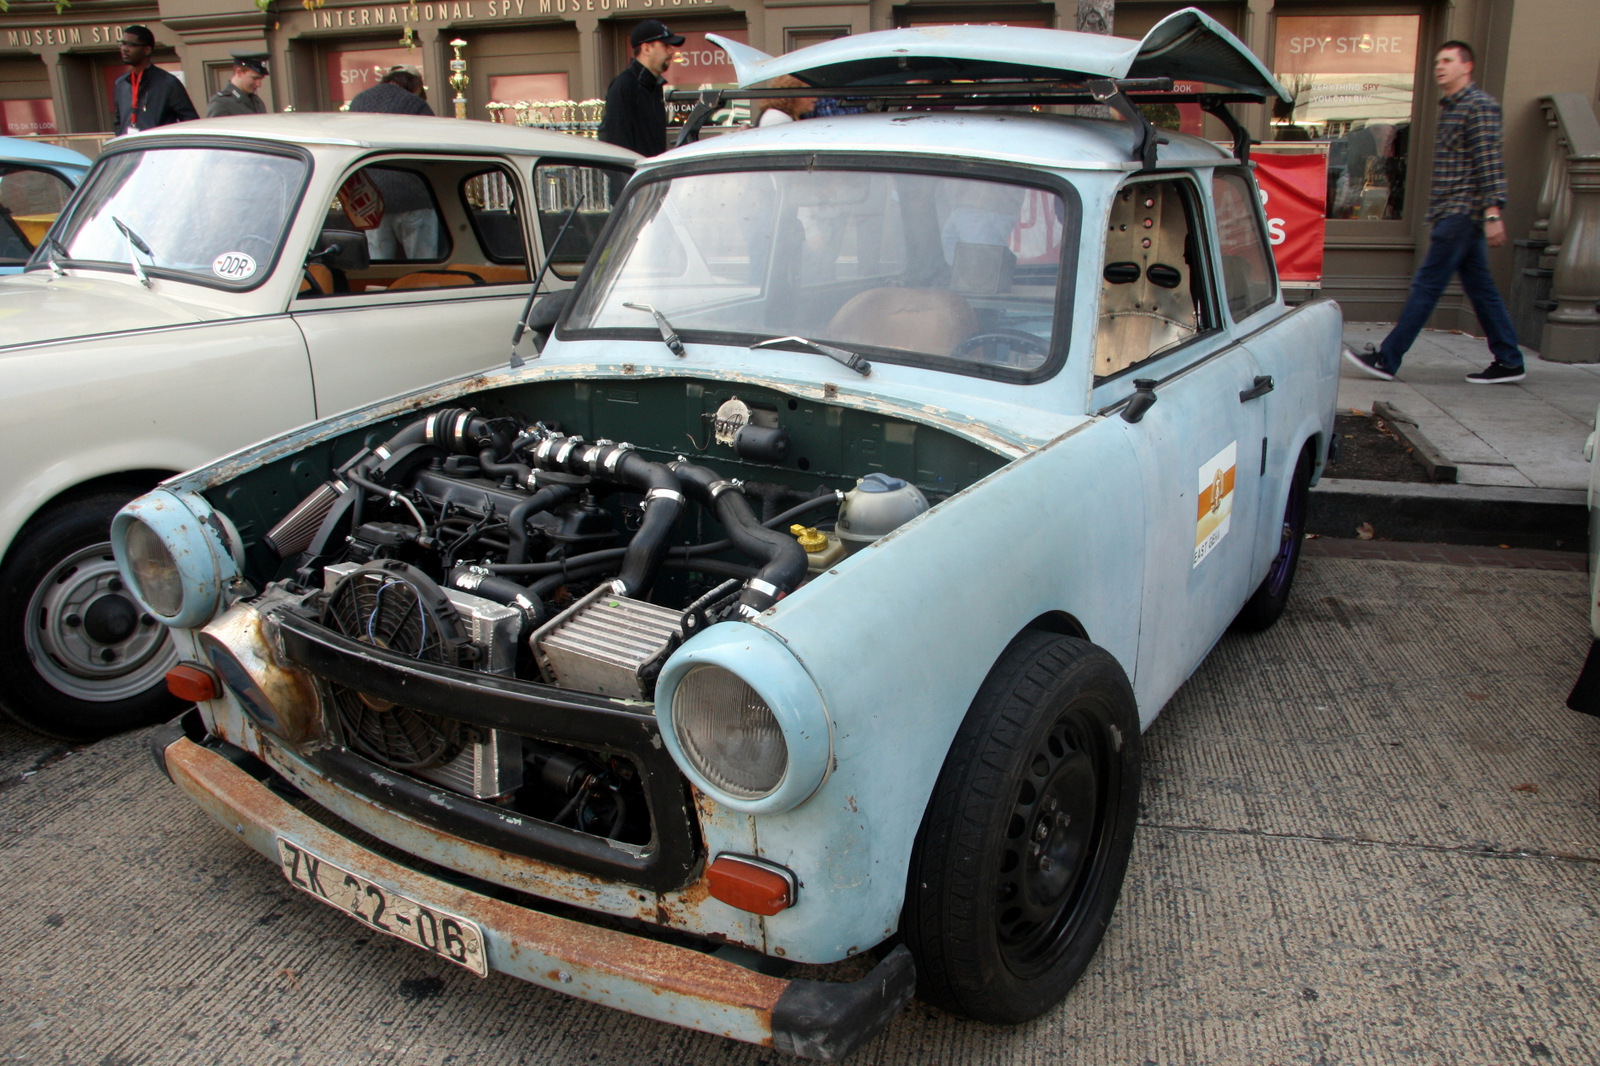 Lightweight Trabants have long been popular with tuners. This one is outfitted with a Volkswagen turbodiesel engine.